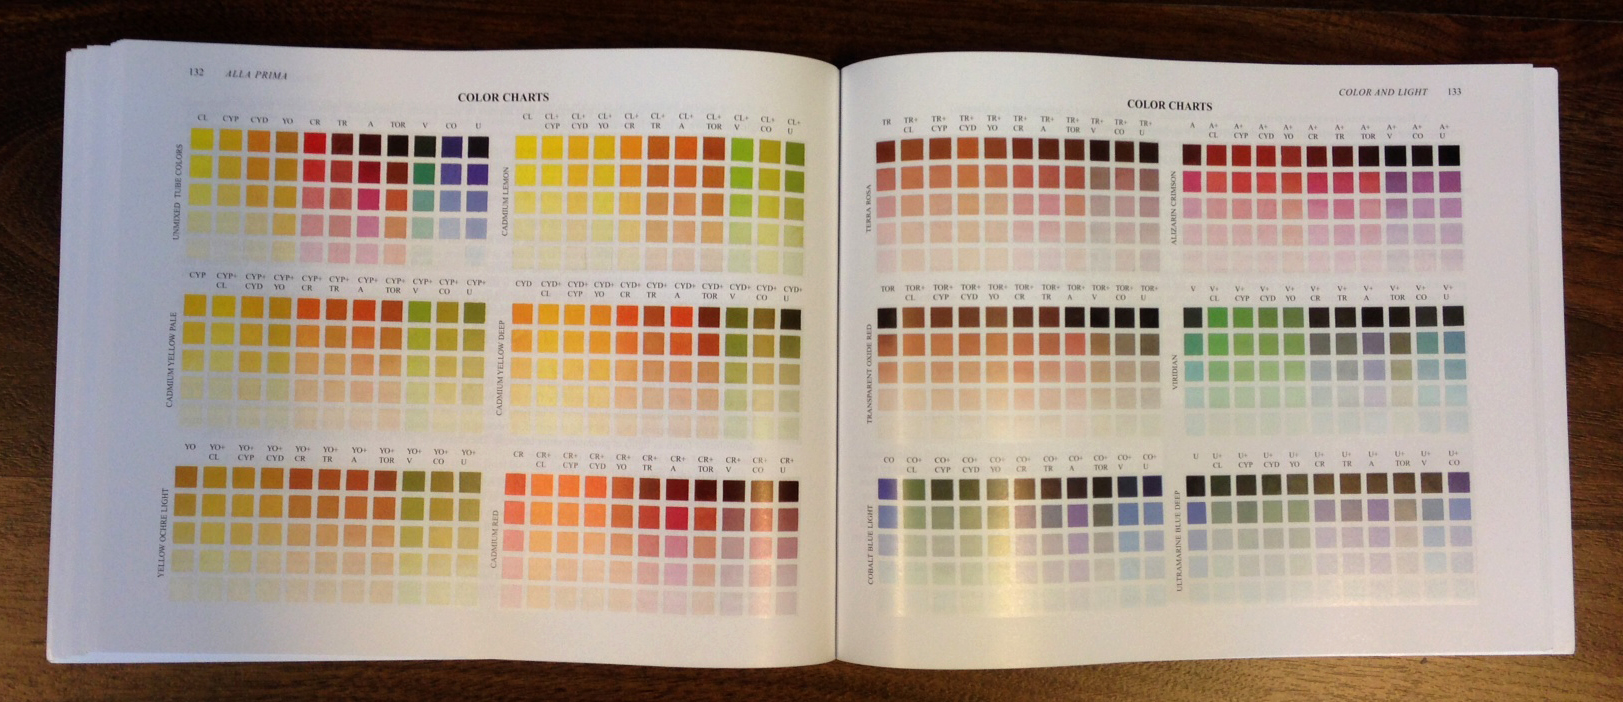 Testors model master color chart gallery chart design ideas richard schmid color charts gallery chart design ideas books that inspire alla prima by richard schmid geenschuldenfo Choice Image